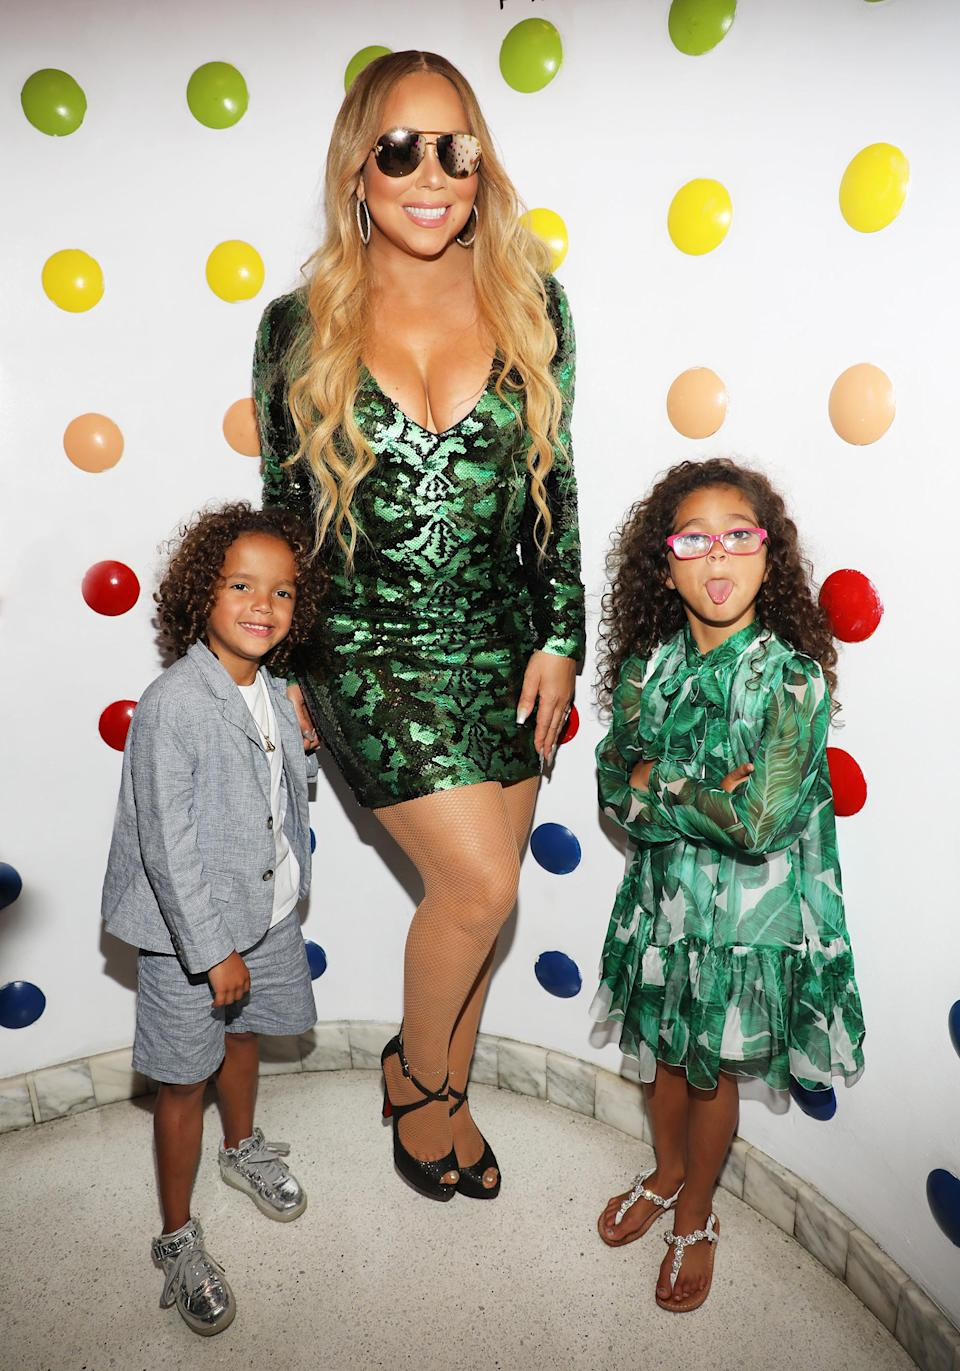 """<p>In 2011, the singer became a mother for the first time, welcoming twins Moroccan and Monroe, at age 42. Carey and her former husband, Nick Cannon, were private about their road to becoming parents, only telling <a href=""""http://people.com/babies/nick-cannon-mariah-carey-twins-born/"""" rel=""""nofollow noopener"""" target=""""_blank"""" data-ylk=""""slk:People"""" class=""""link rapid-noclick-resp""""><em>People</em></a> it was a """"long journey."""" (Photo: Alexander Tamargo/Getty Images) </p>"""